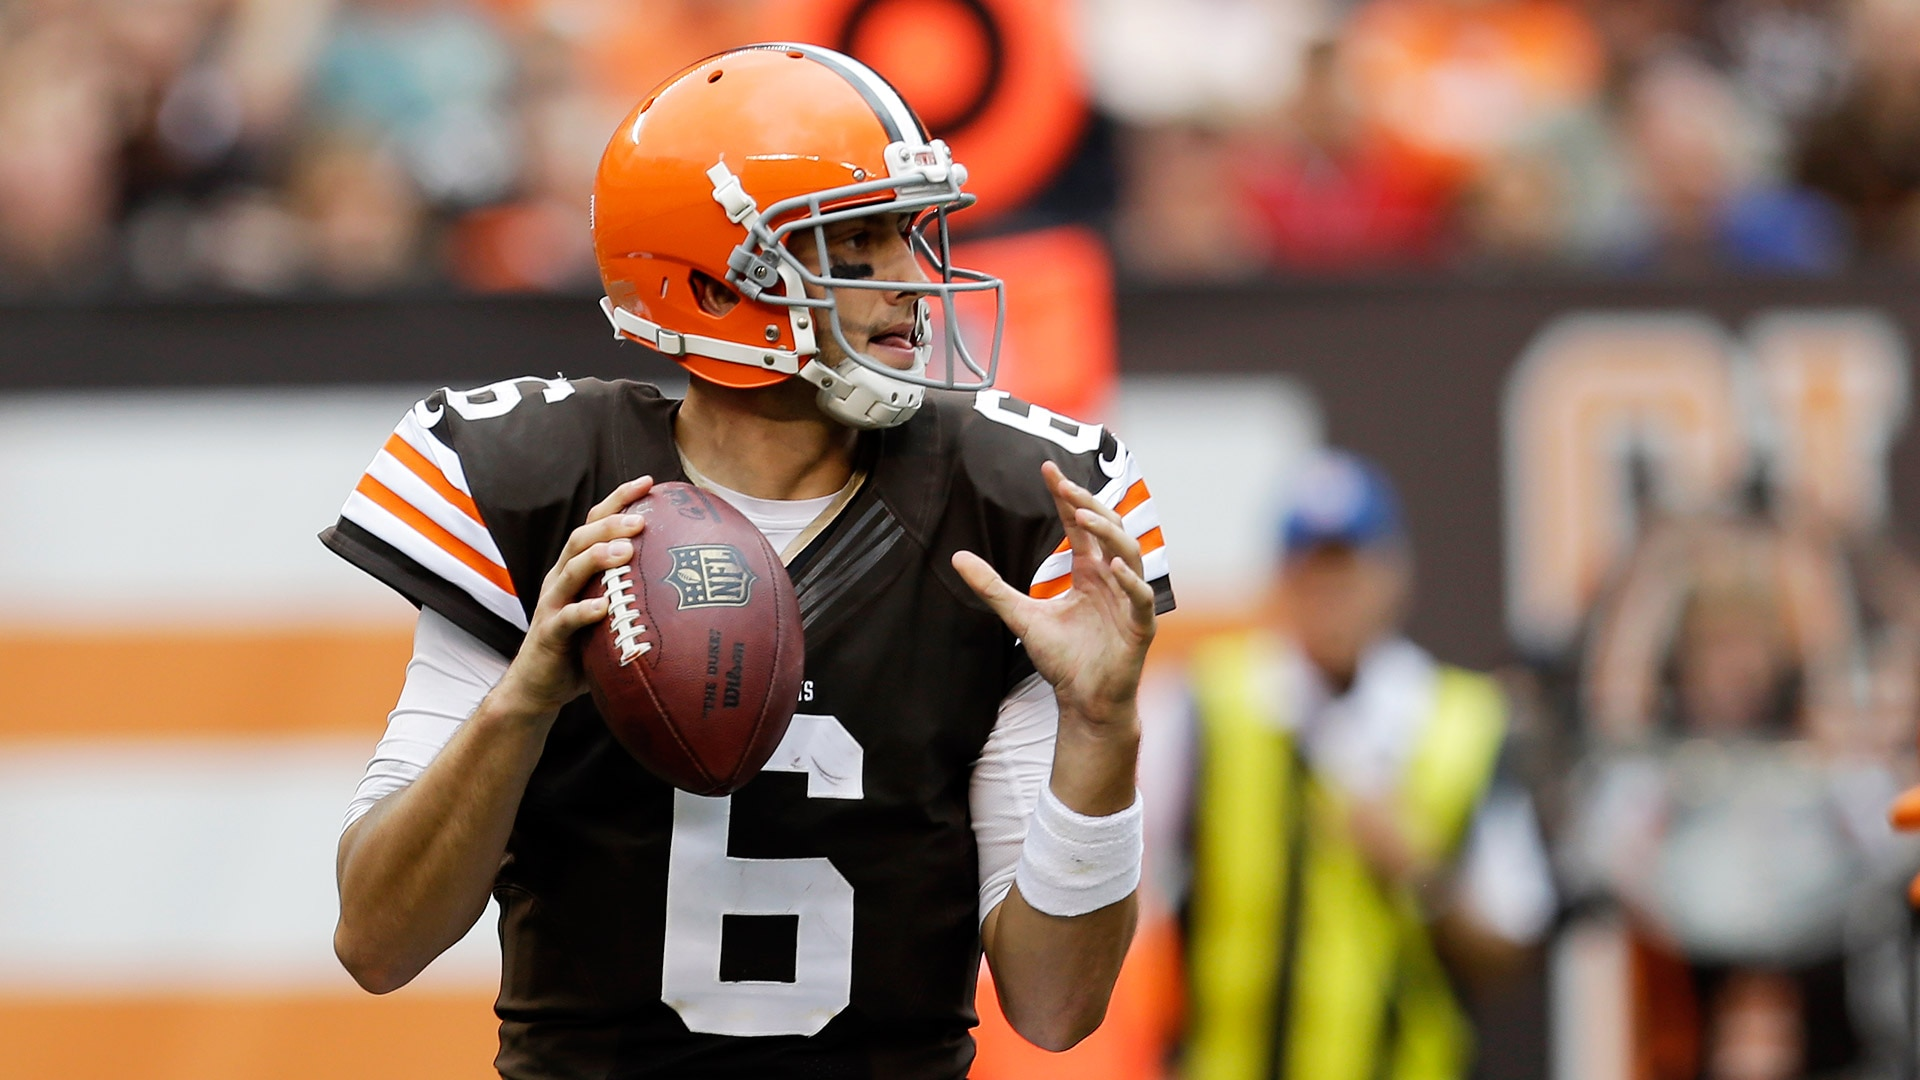 Courtesy of ESPN: The pressure is on Hoyer to prove Manziel's better off on the bench.